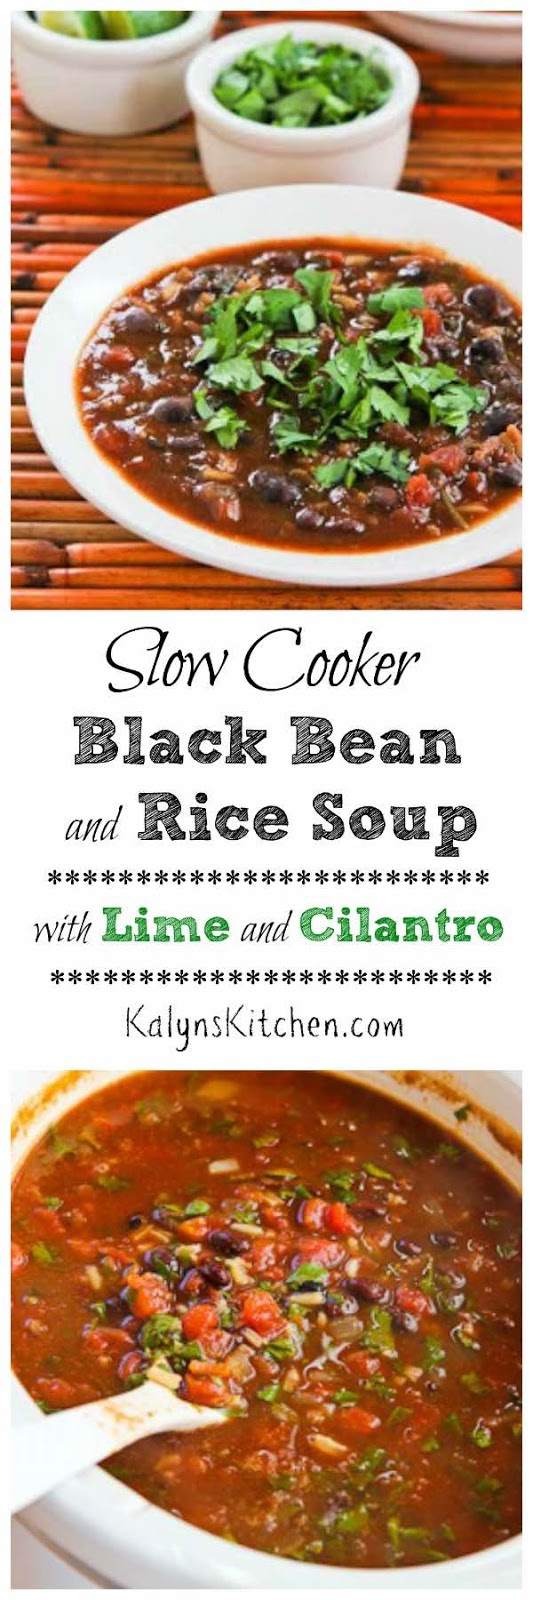 Kalyn's Kitchen®: Slow Cooker Vegetarian Black Bean and ...